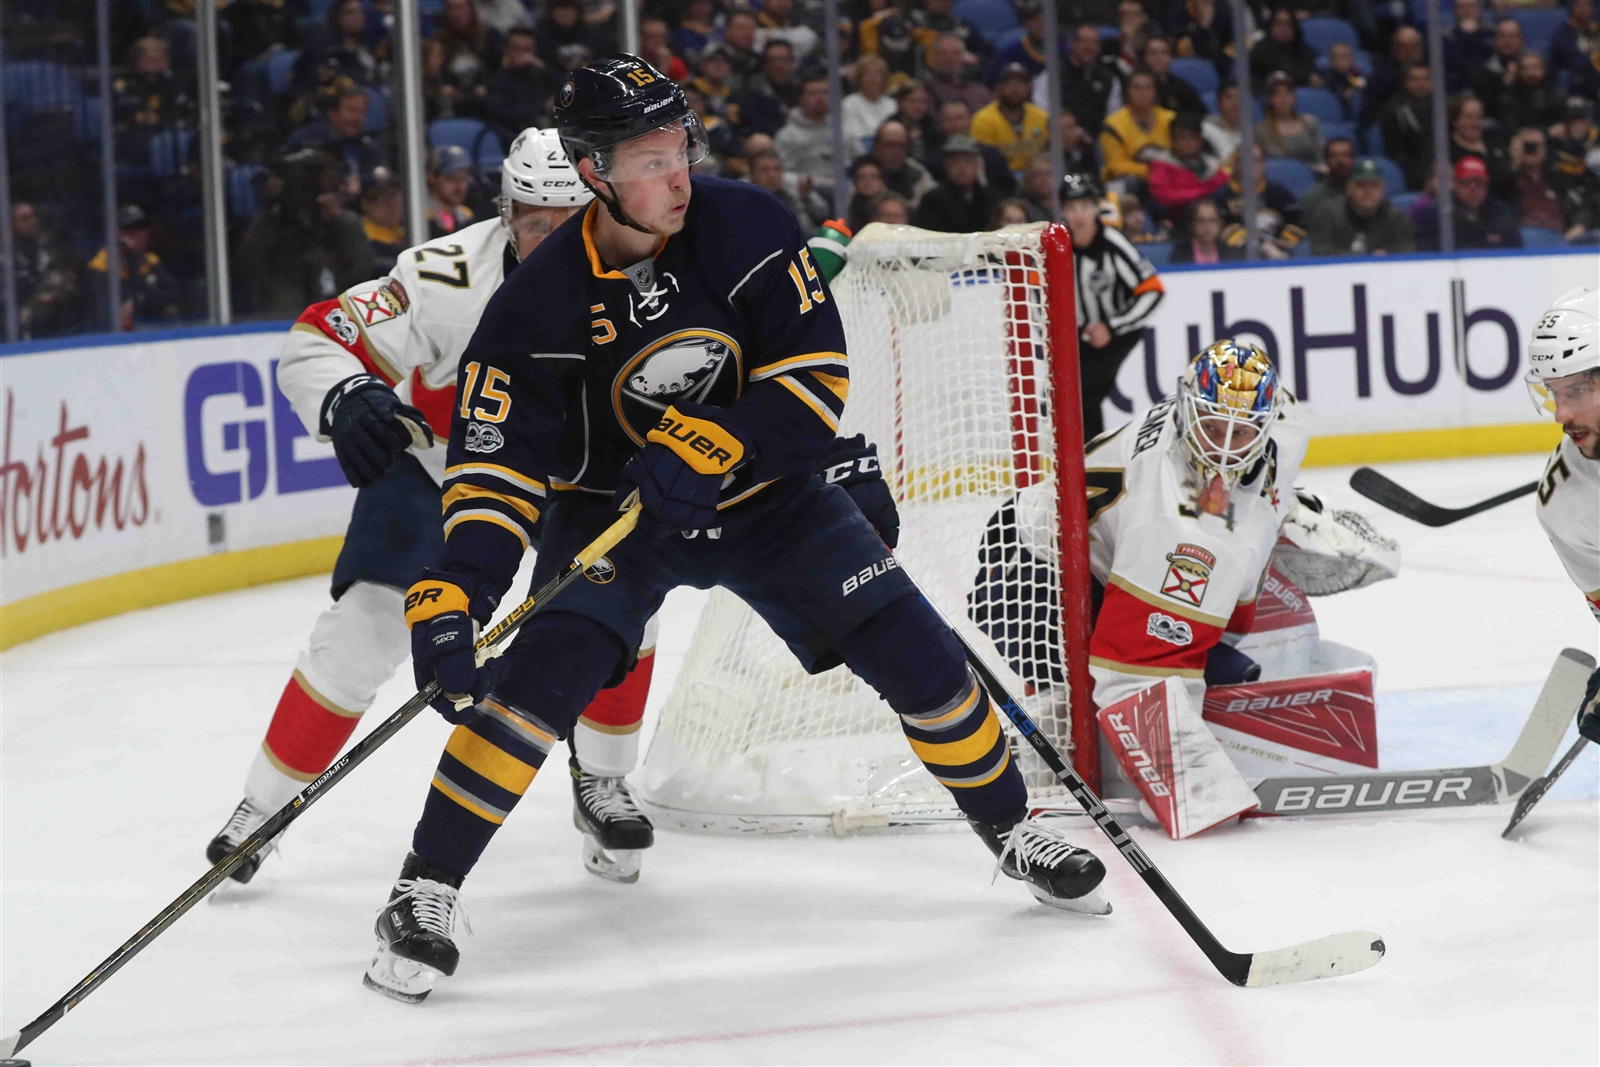 Jack Eichel is not only holding the puck, he's dangerous with it. (James P. McCoy/Buffalo News)